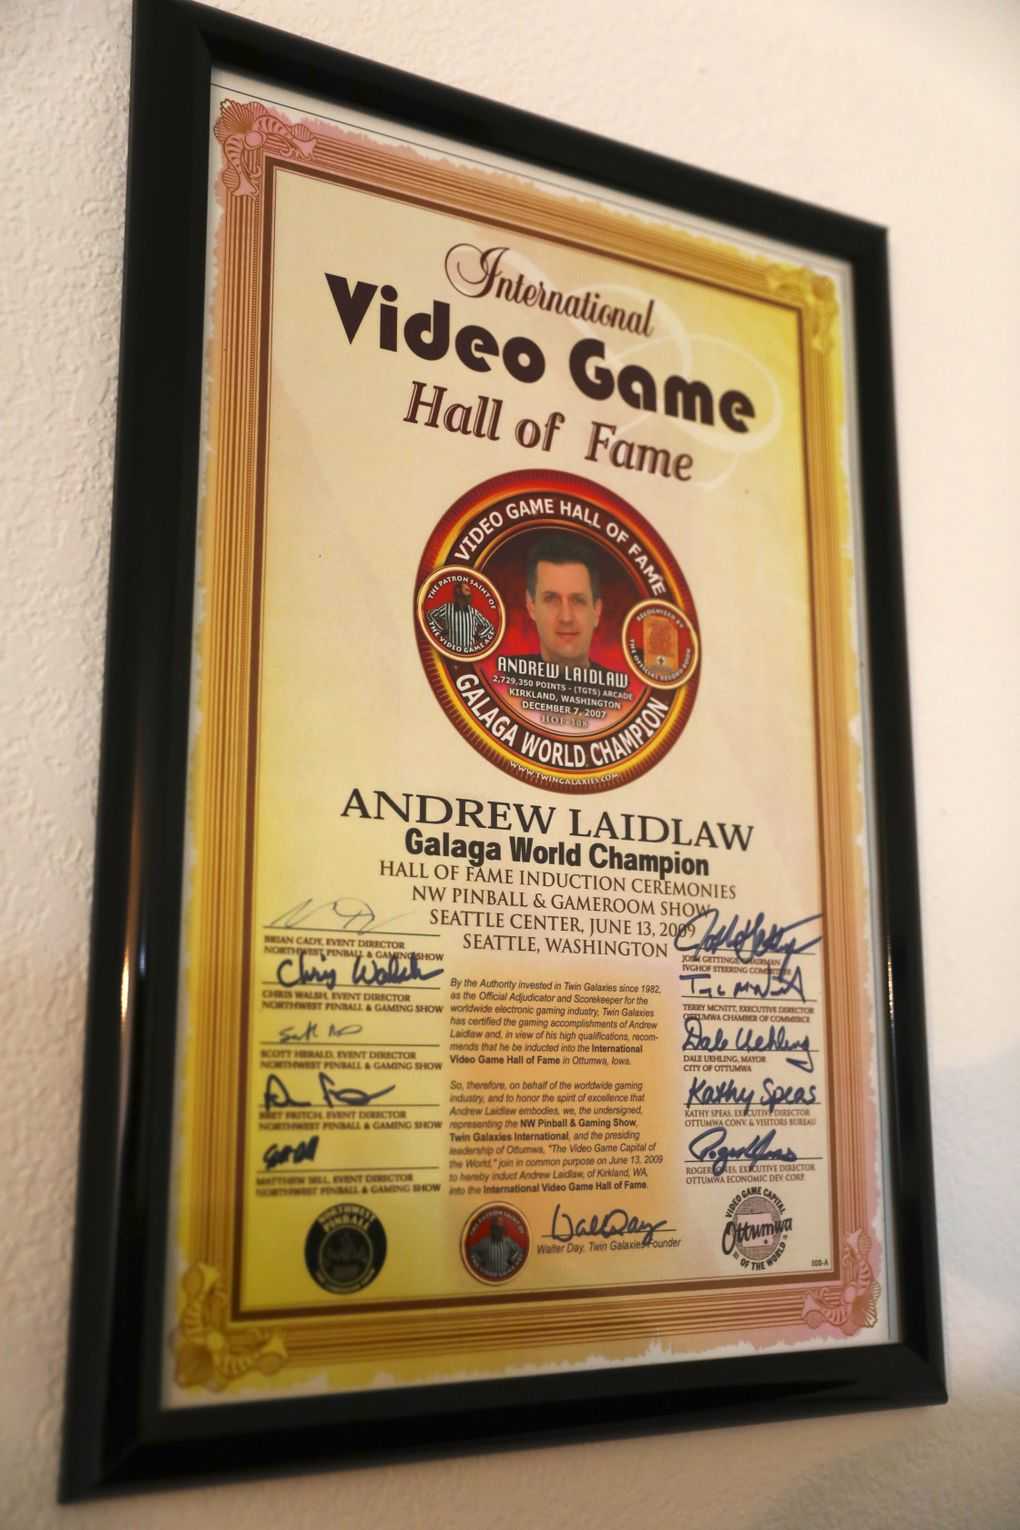 Andrew Laidlaw has the plaque that proves he's the world record holder in Galaga on his wall at home in Kirkland. (Ken Lambert/The Seattle Times)